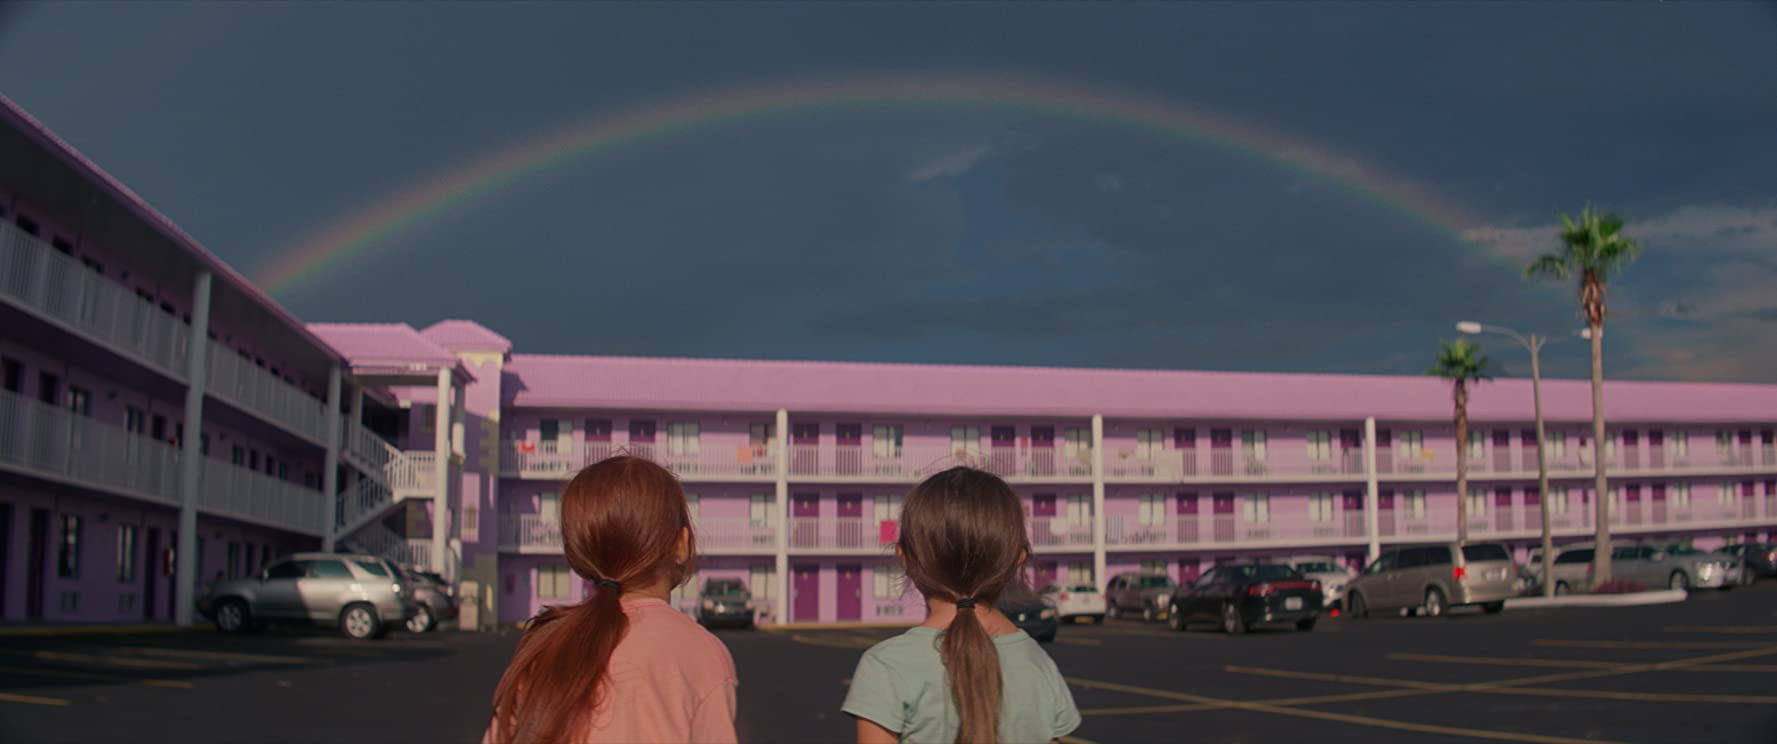 still from 'The Florida Project' showing the Magic Castle Inn